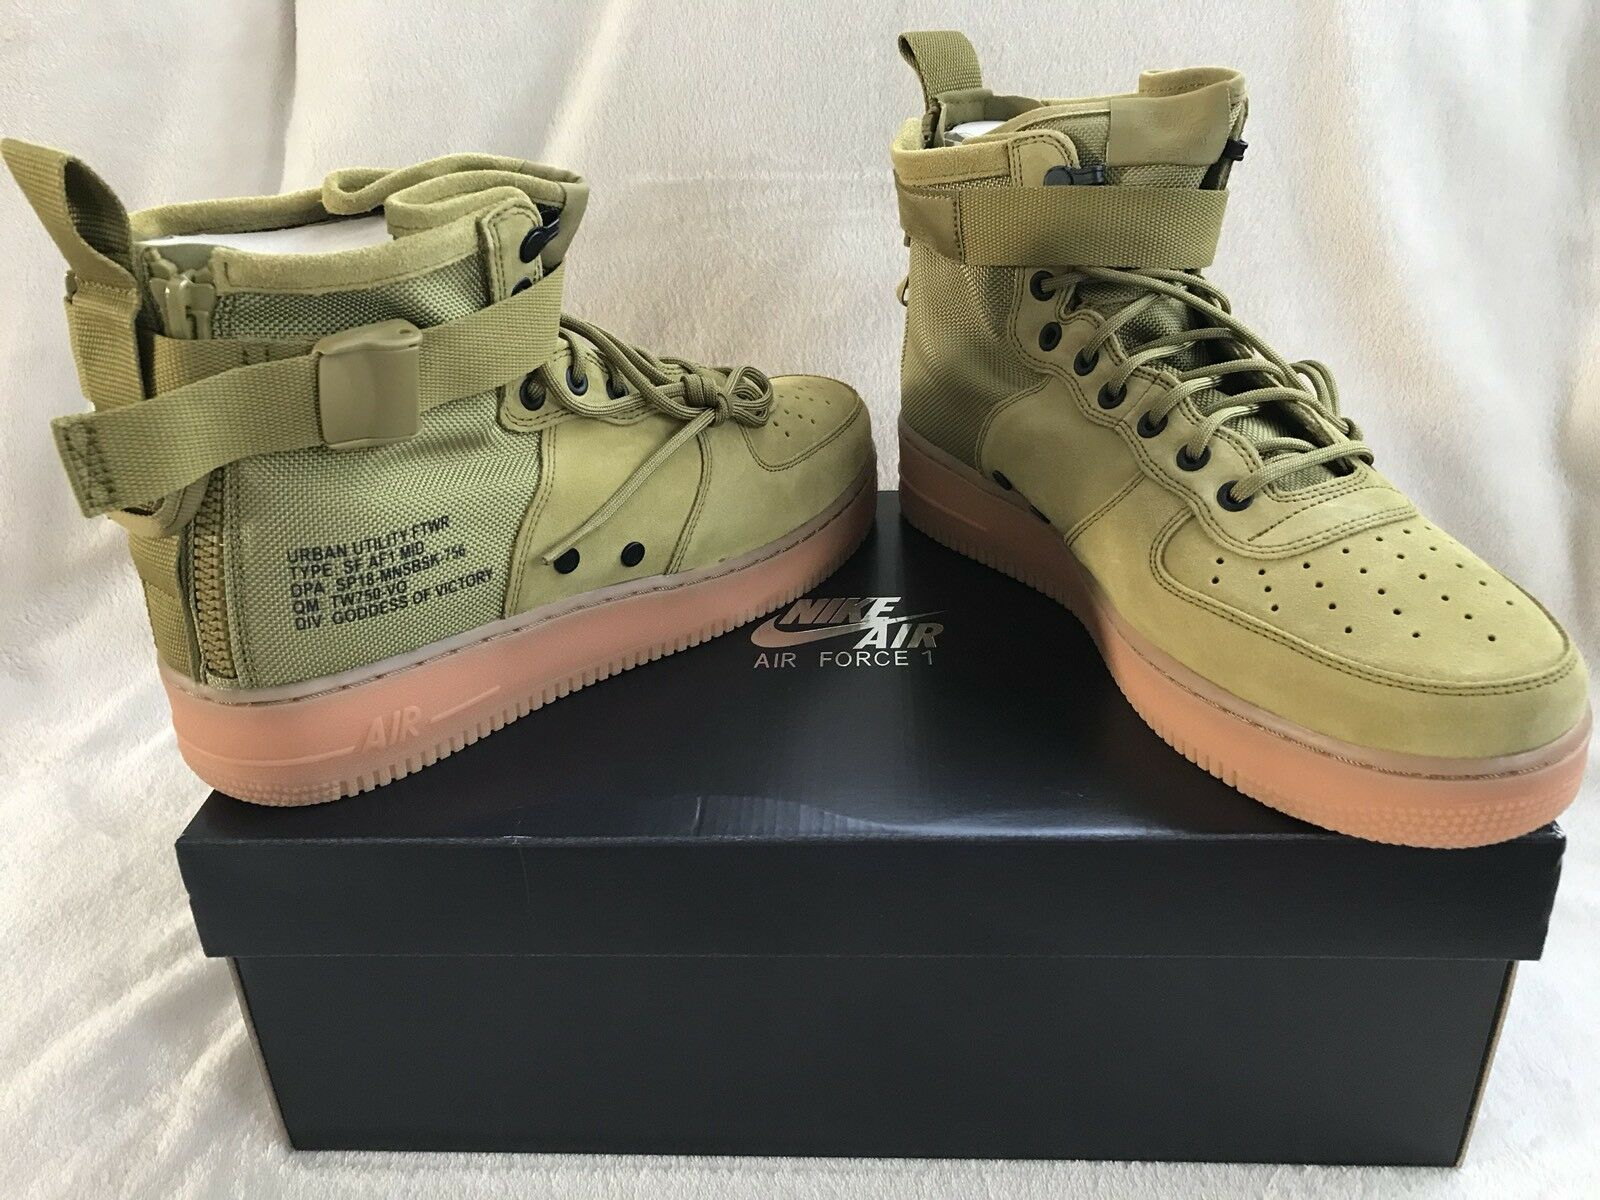 Nike Special 1 Forces Air Force Mens Mid Shoes Desert Sepatu Basket Kevin Durant Kd 9 Home Original 843392 411 Moss 917753 301 Sz 11 C33036